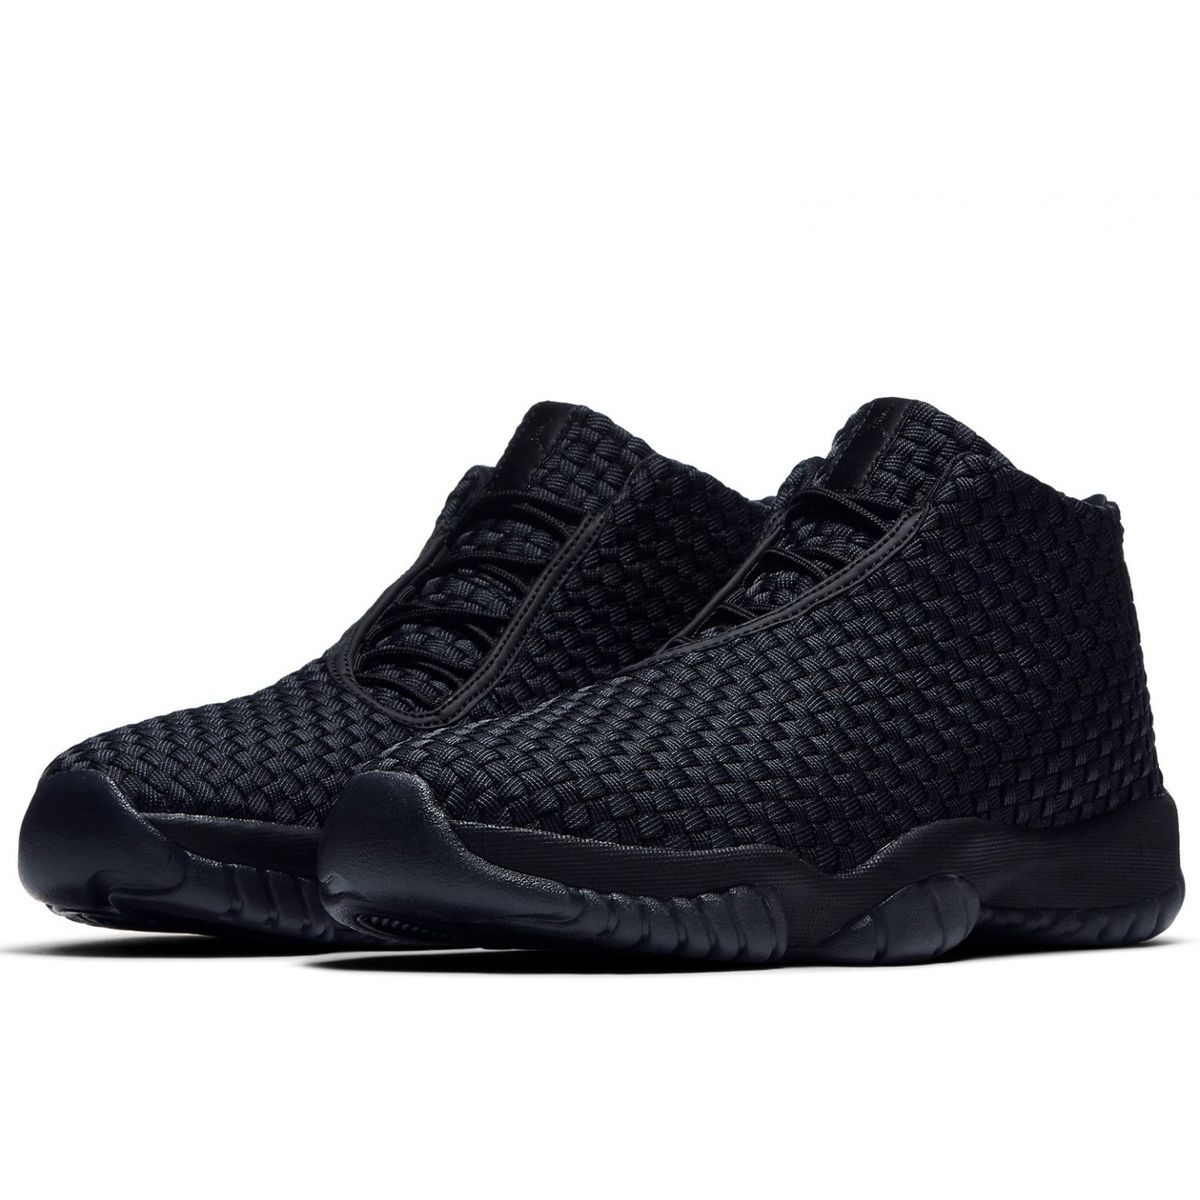 Baskets Nike Jordan Future Low Ref. 656503 001 | Products